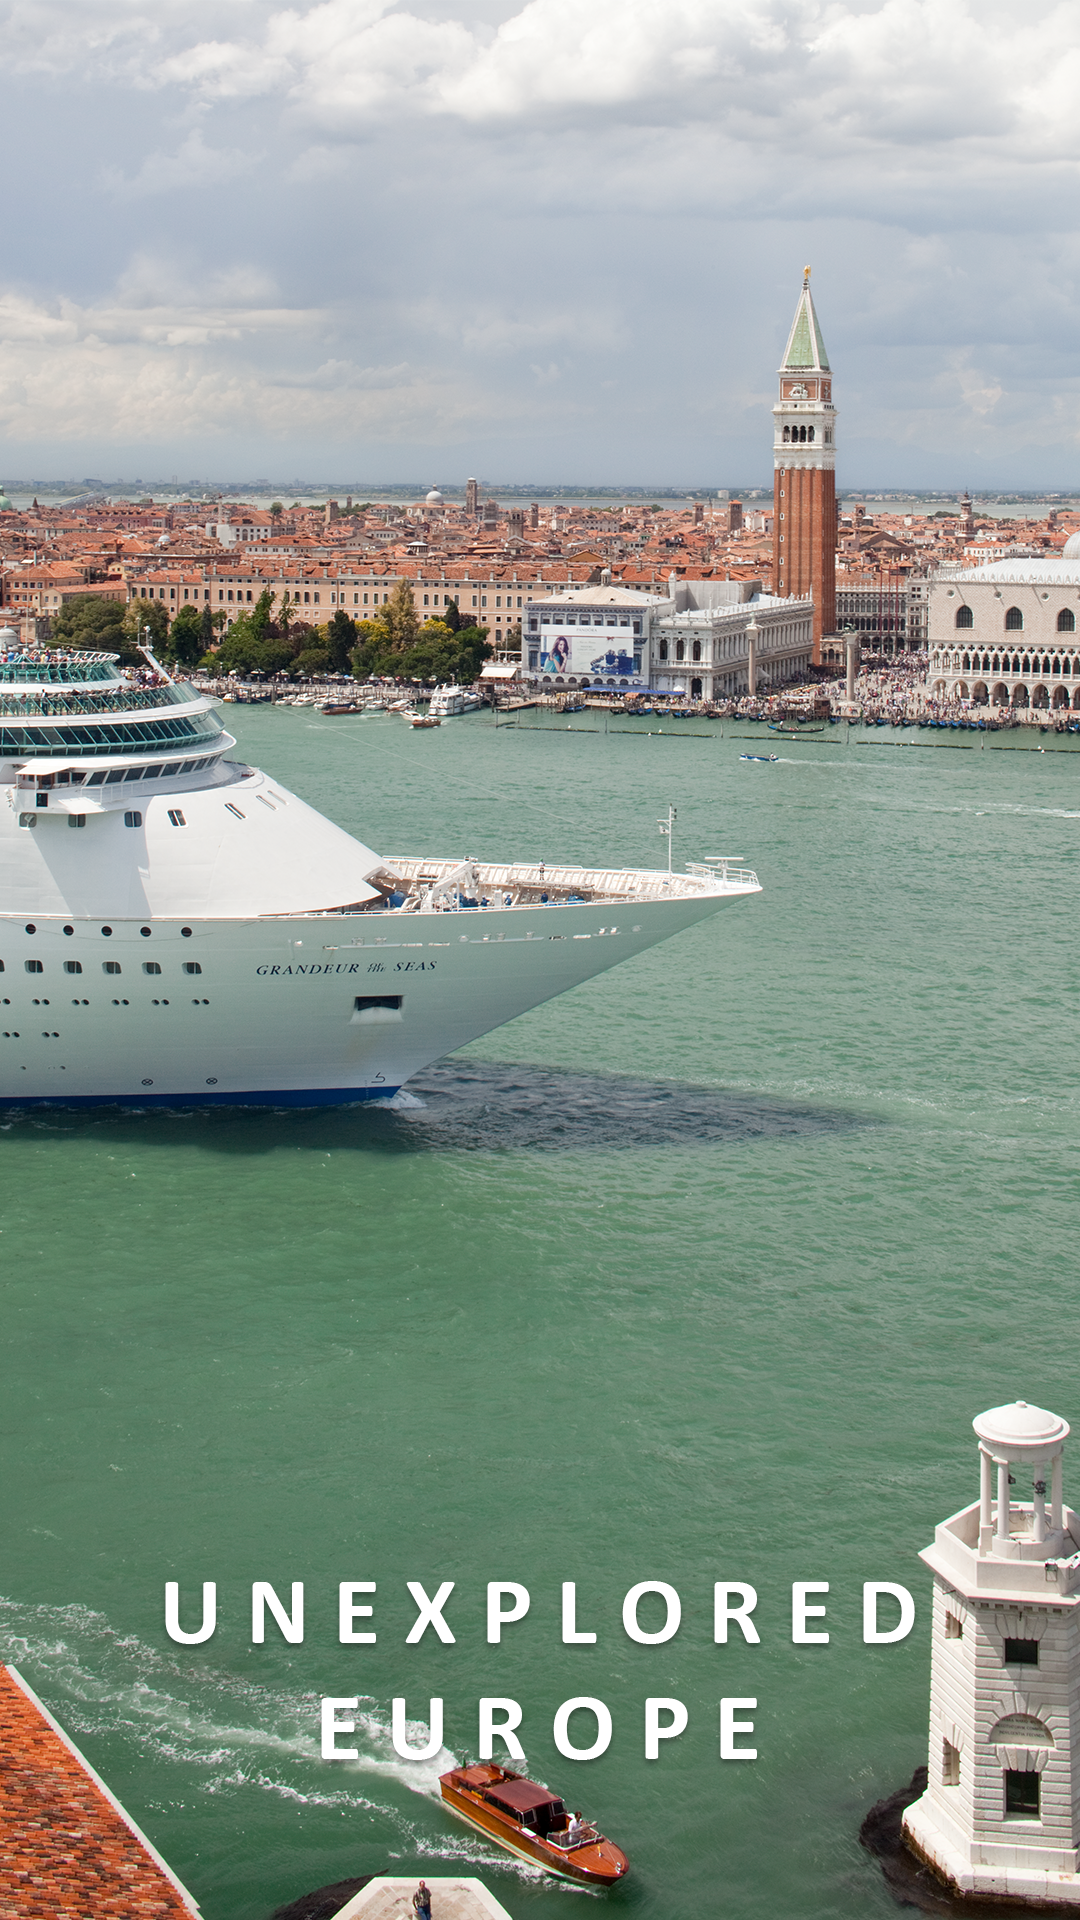 Europe on The Celebrity Cruises